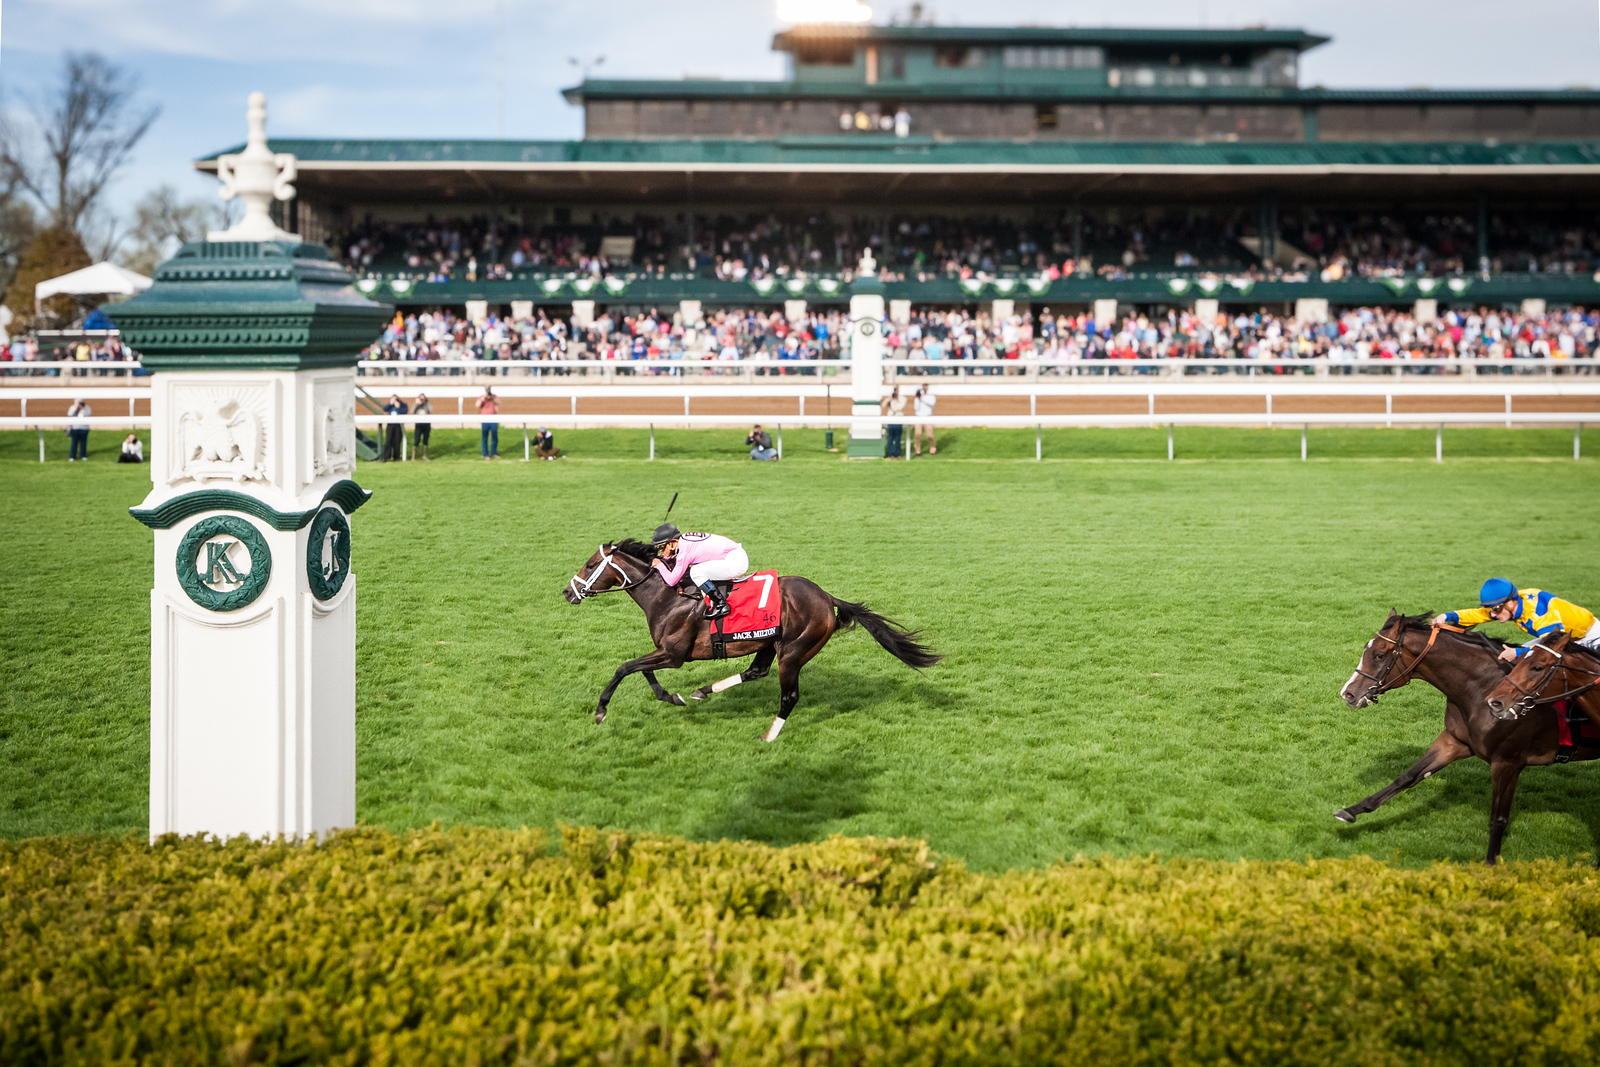 Jack Milton (War Front) wins The Maker's 46 Mile (G1) at Keeneland on 4.10.2015. Javier Castellano up, Tod Pletcher trainer, Gary Barber owner.